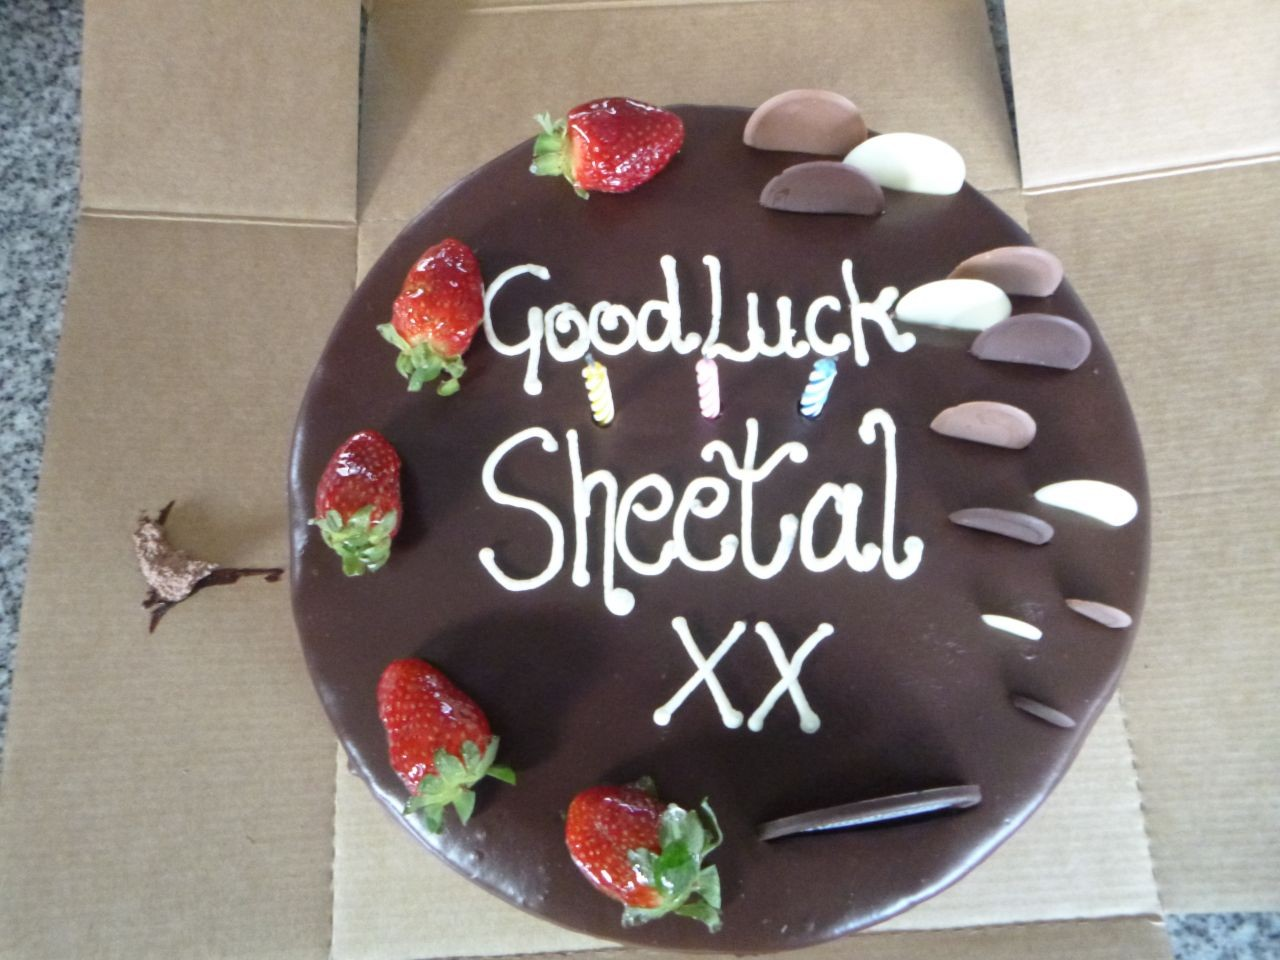 Sheetal's Farewell